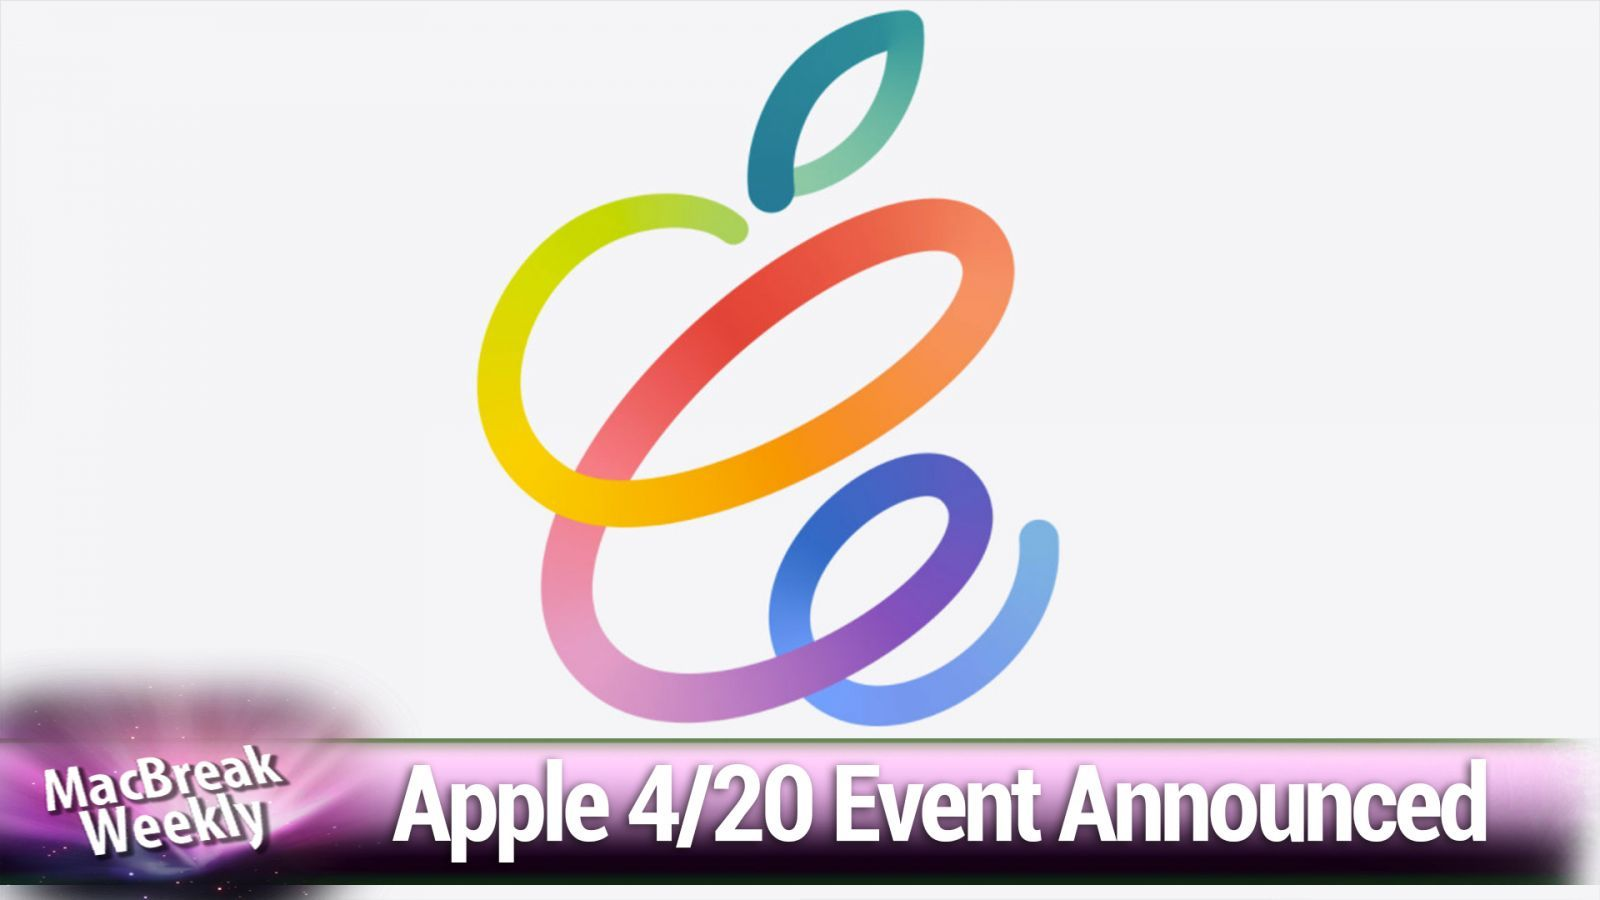 Apple's April 20 event, iMessage on Android, Leo runs Android on his iPhone